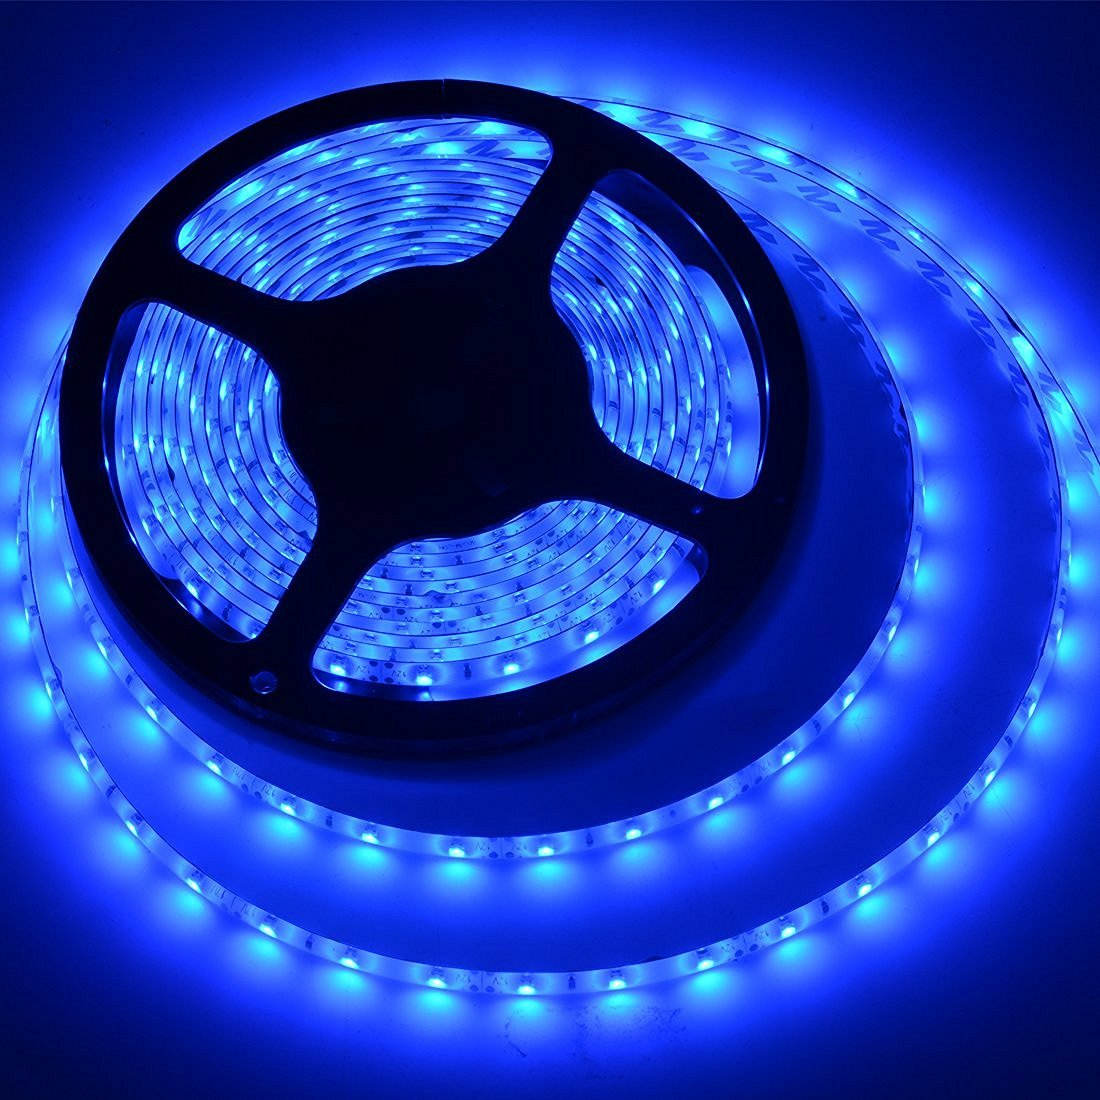 Amazon meili led light strip smd 3528 164 ft 5 meter amazon meili led light strip smd 3528 164 ft 5 meter waterproof 300 leds 12v flexible rope light no power supply blue home improvement aloadofball Images